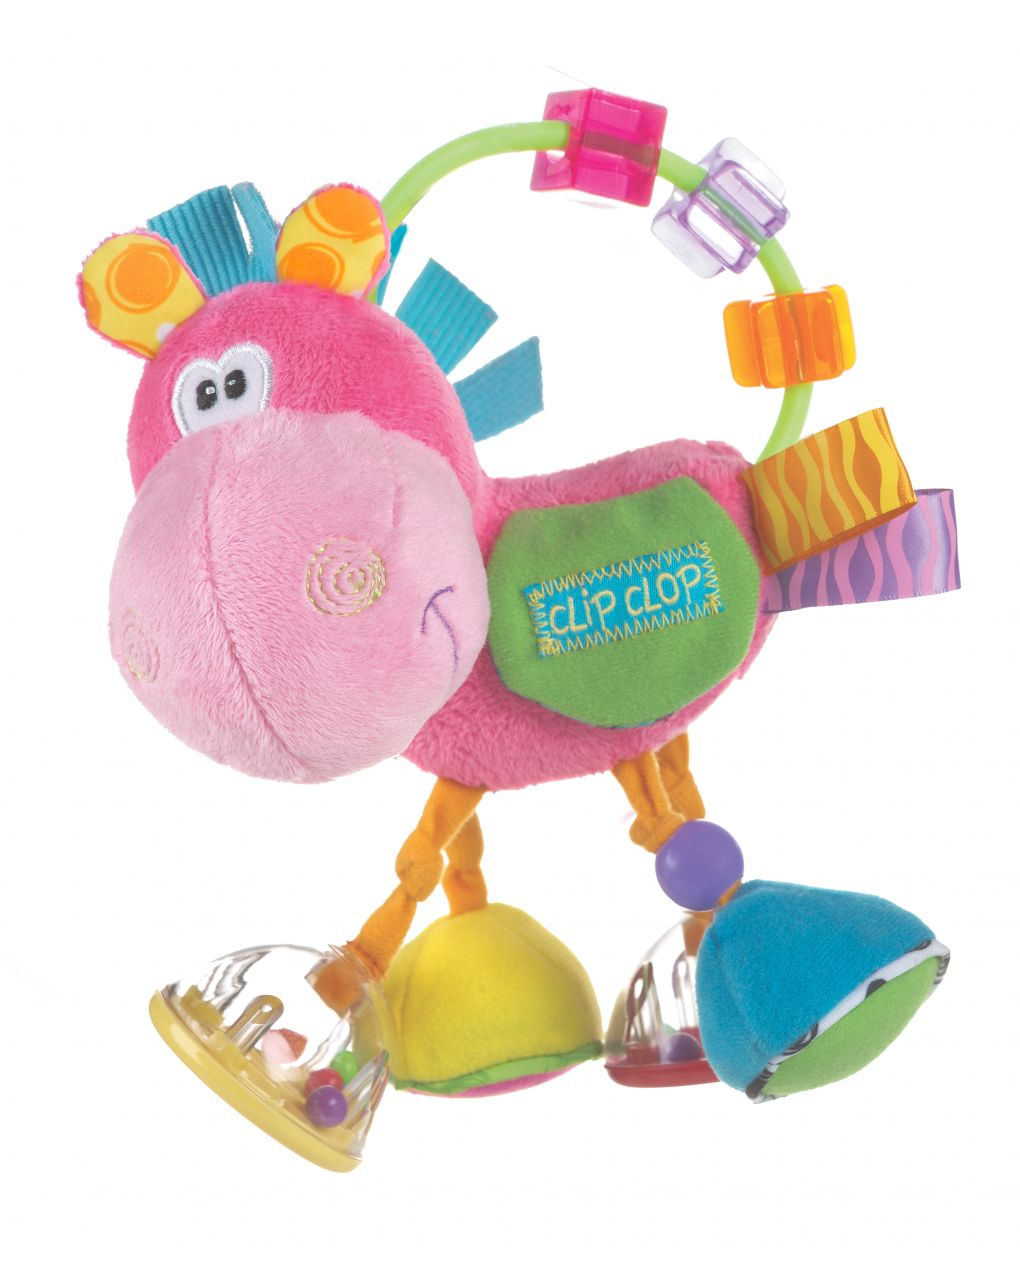 Playgro - clopette activity rattle - Playgro